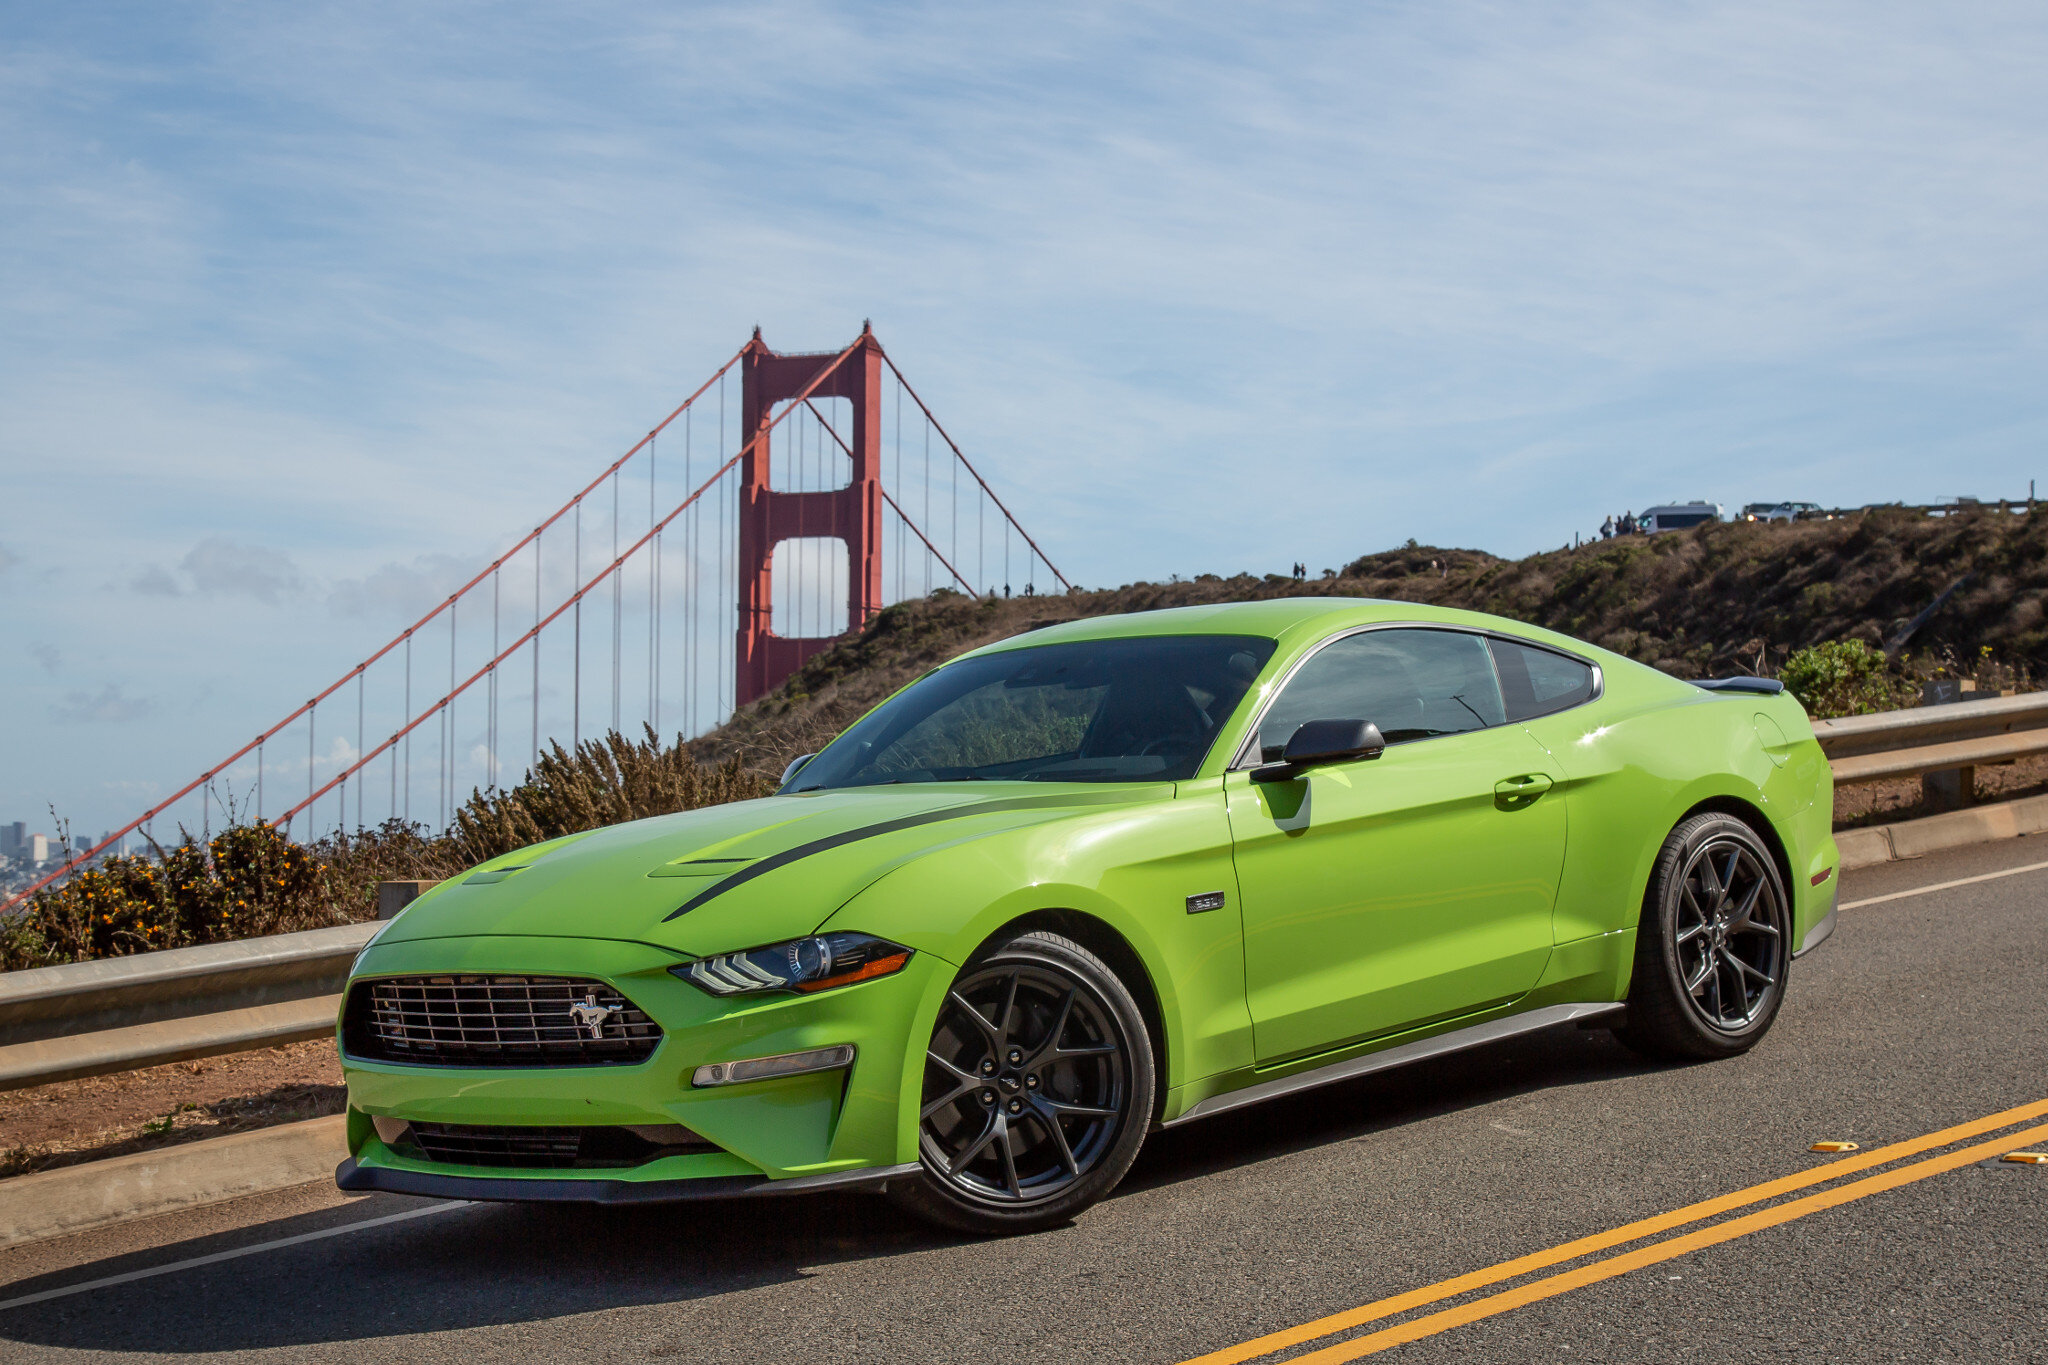 2020-ford-mustang-ecoboost-hpp-review-high-times-cars-com.jpg